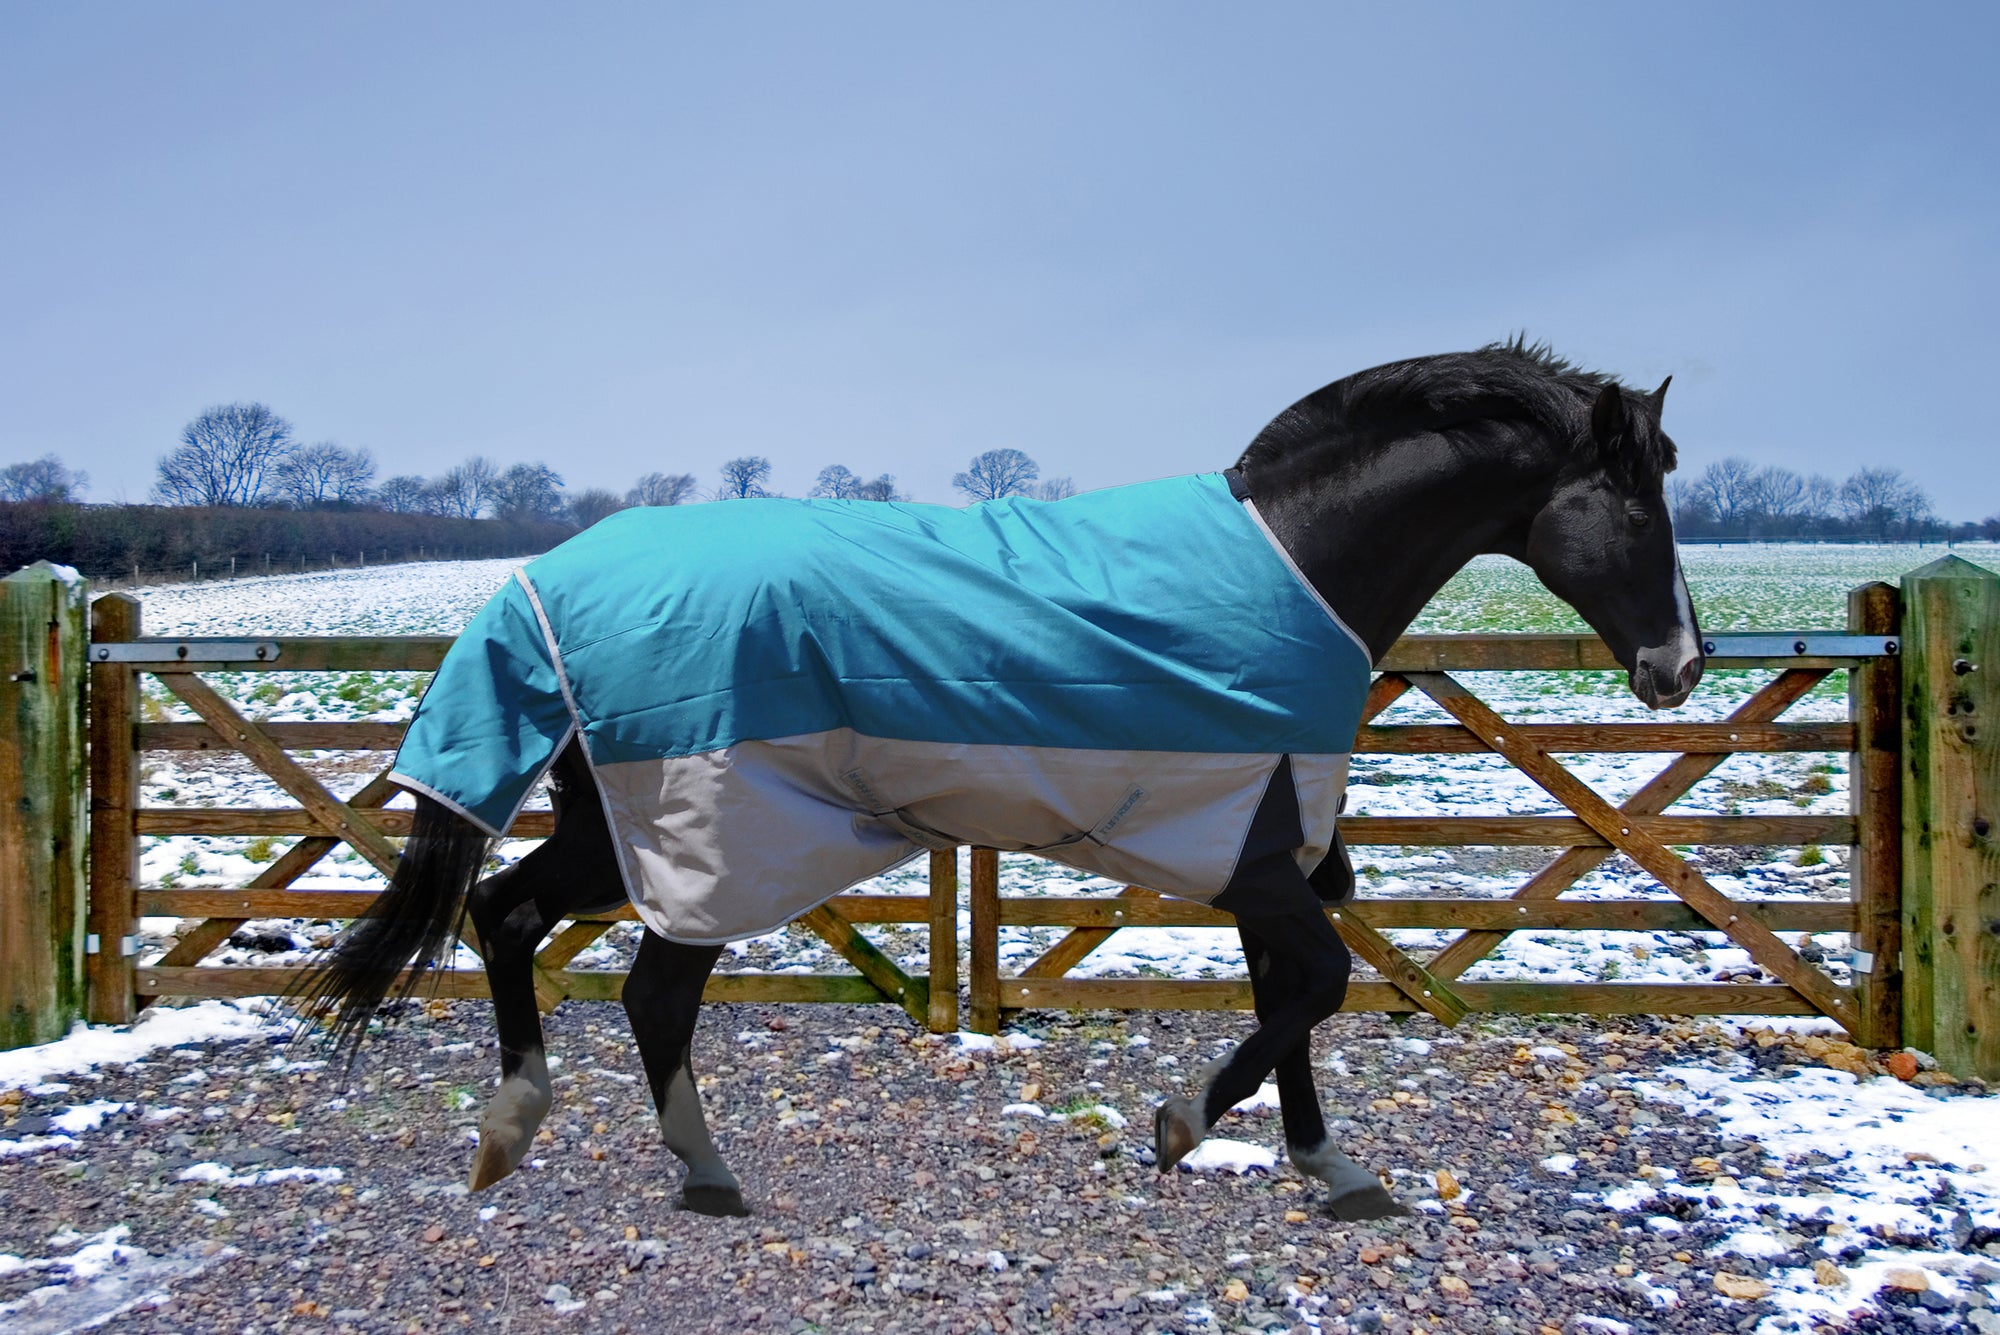 Major 1200D Ballistic 220 GMS Turnout Standard Neck Two Tone Turnout Blanket - TuffRider - Breeches.com